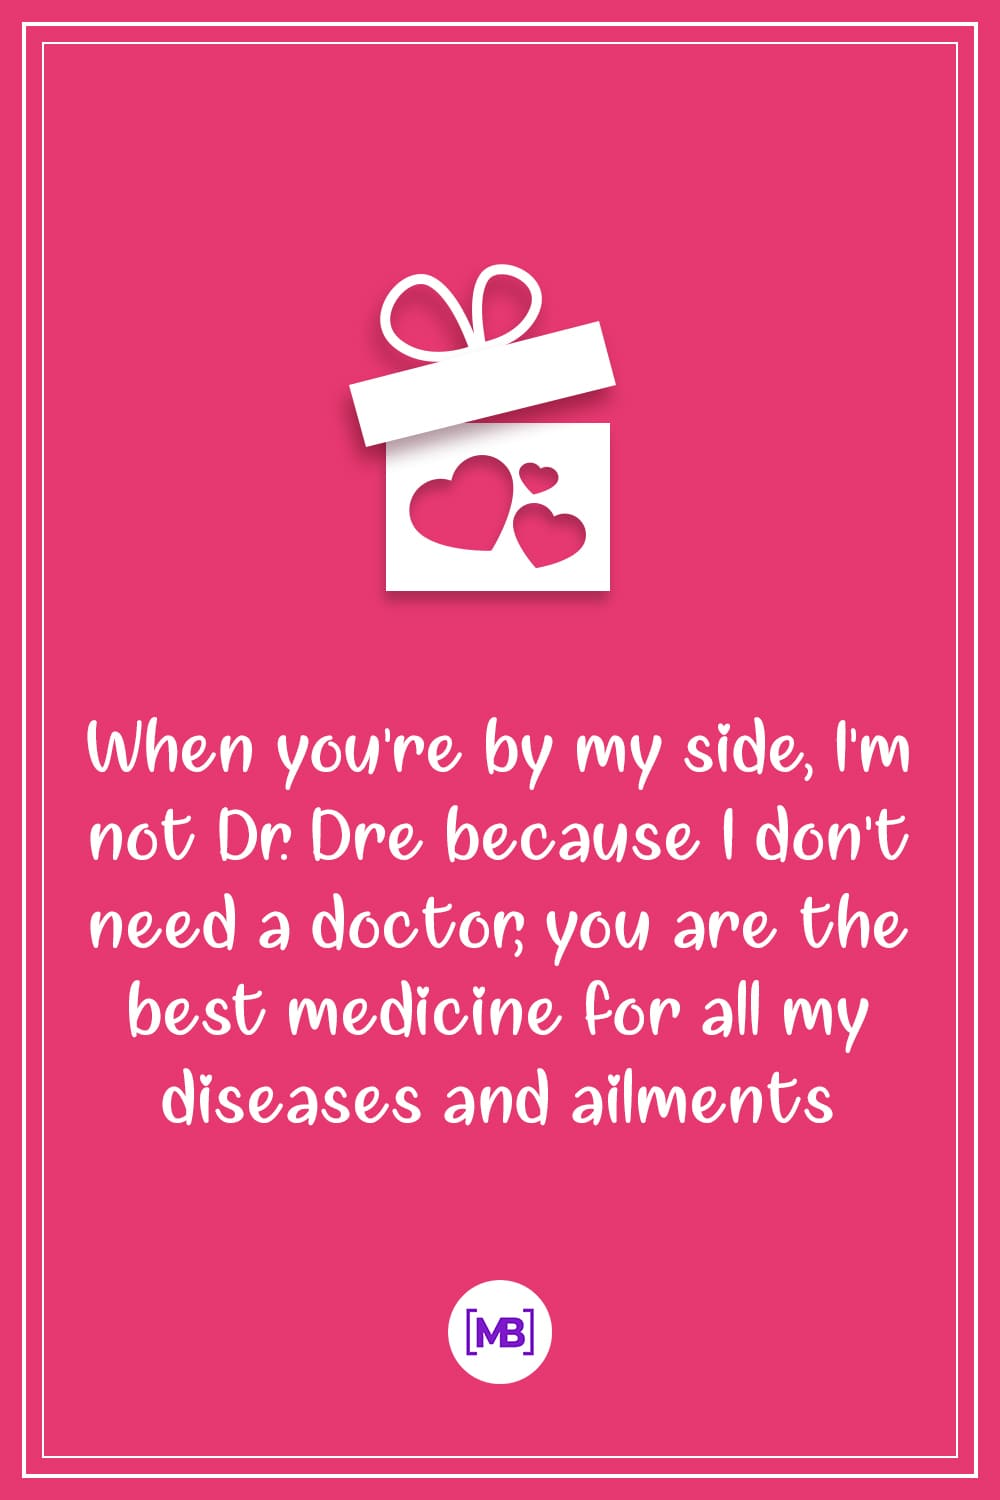 When you're by my side, I'm not Dr. Dre because I don't need a doctor, you are the best medicine for all my diseases and ailments.